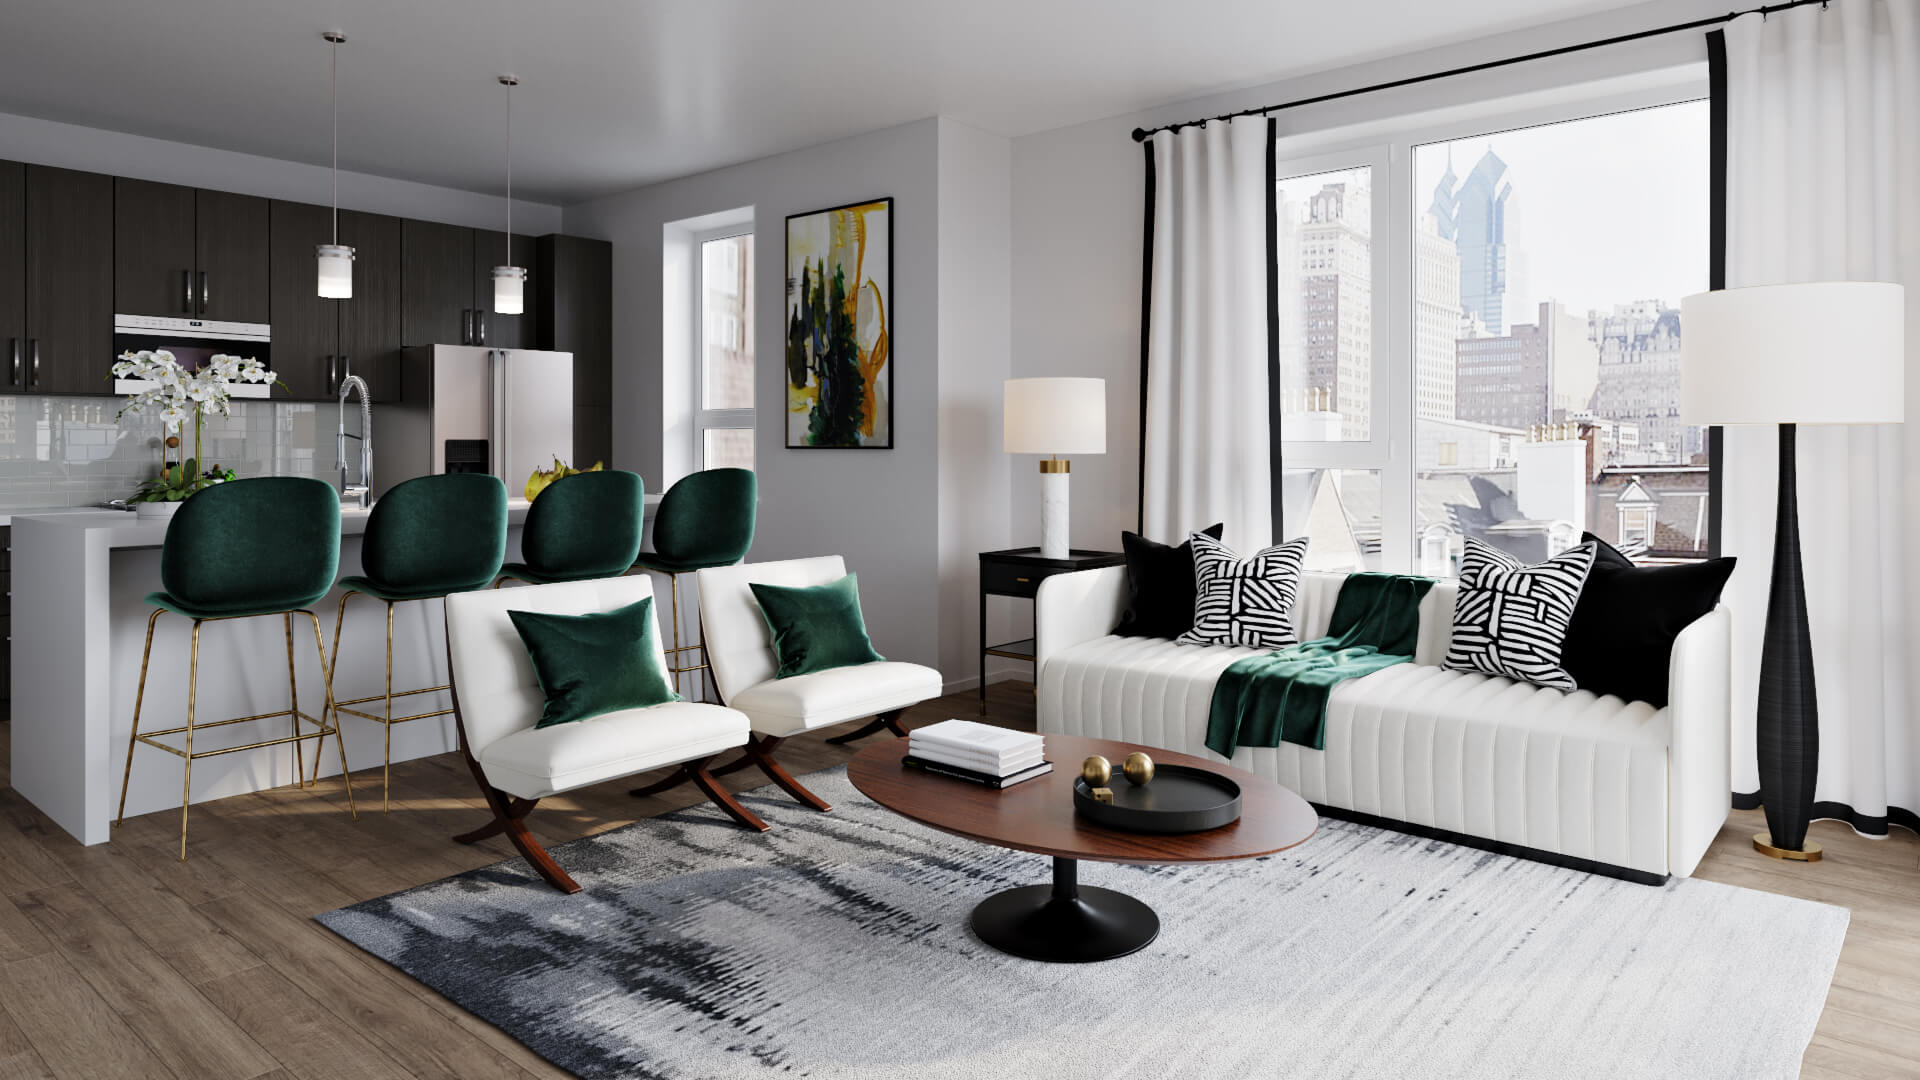 3D Visualization of a Stylish Living Space